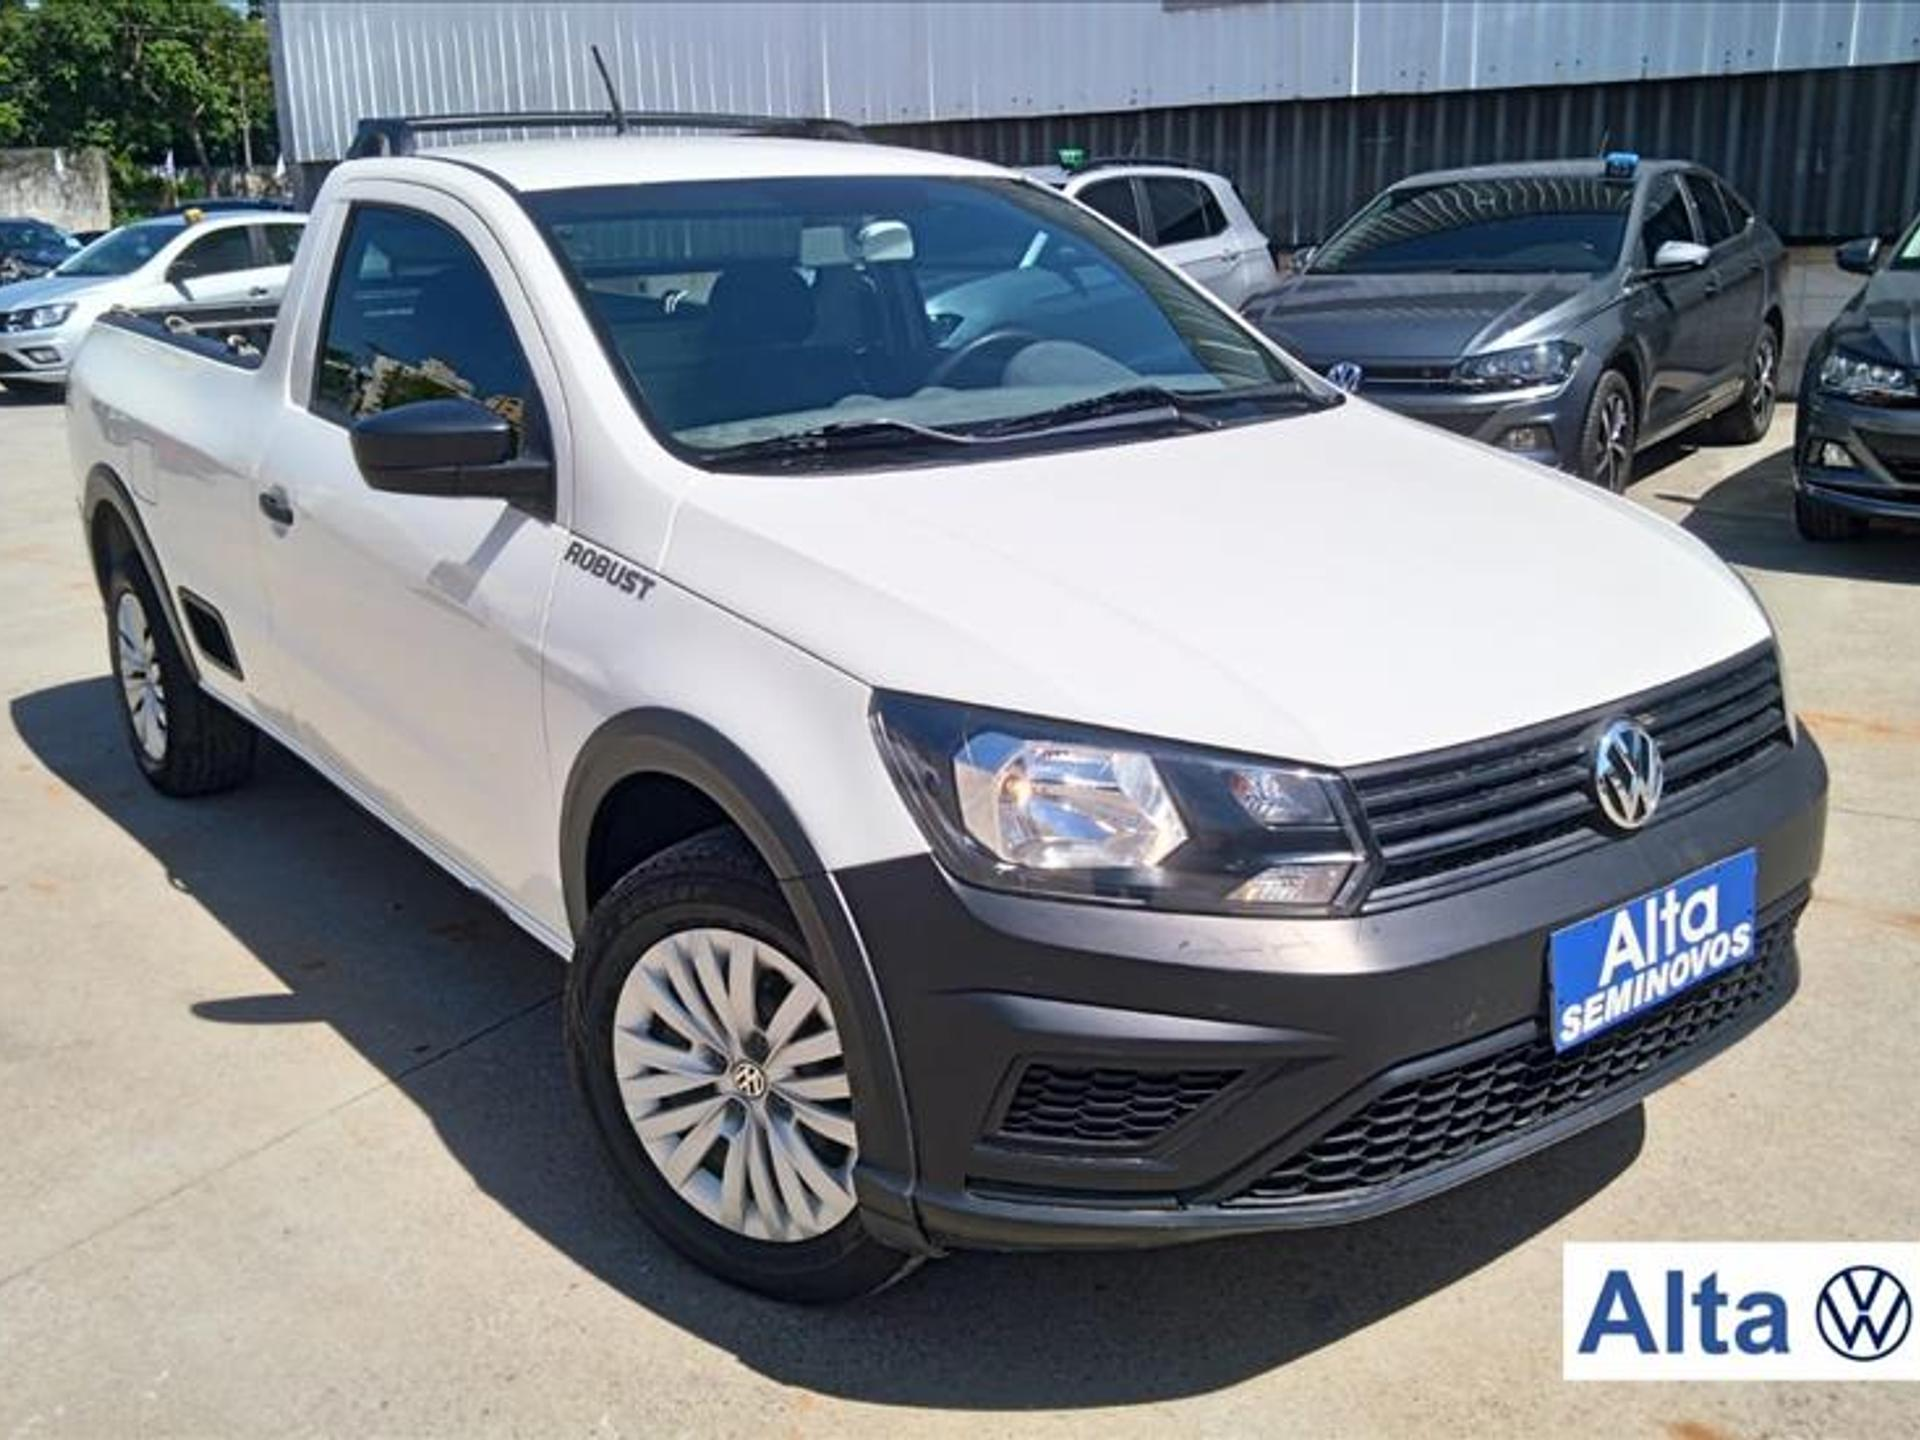 Volkswagen Saveiro 1.6 Msi Robust Cs 8v Flex 2p Manual Wmimagem13095819372